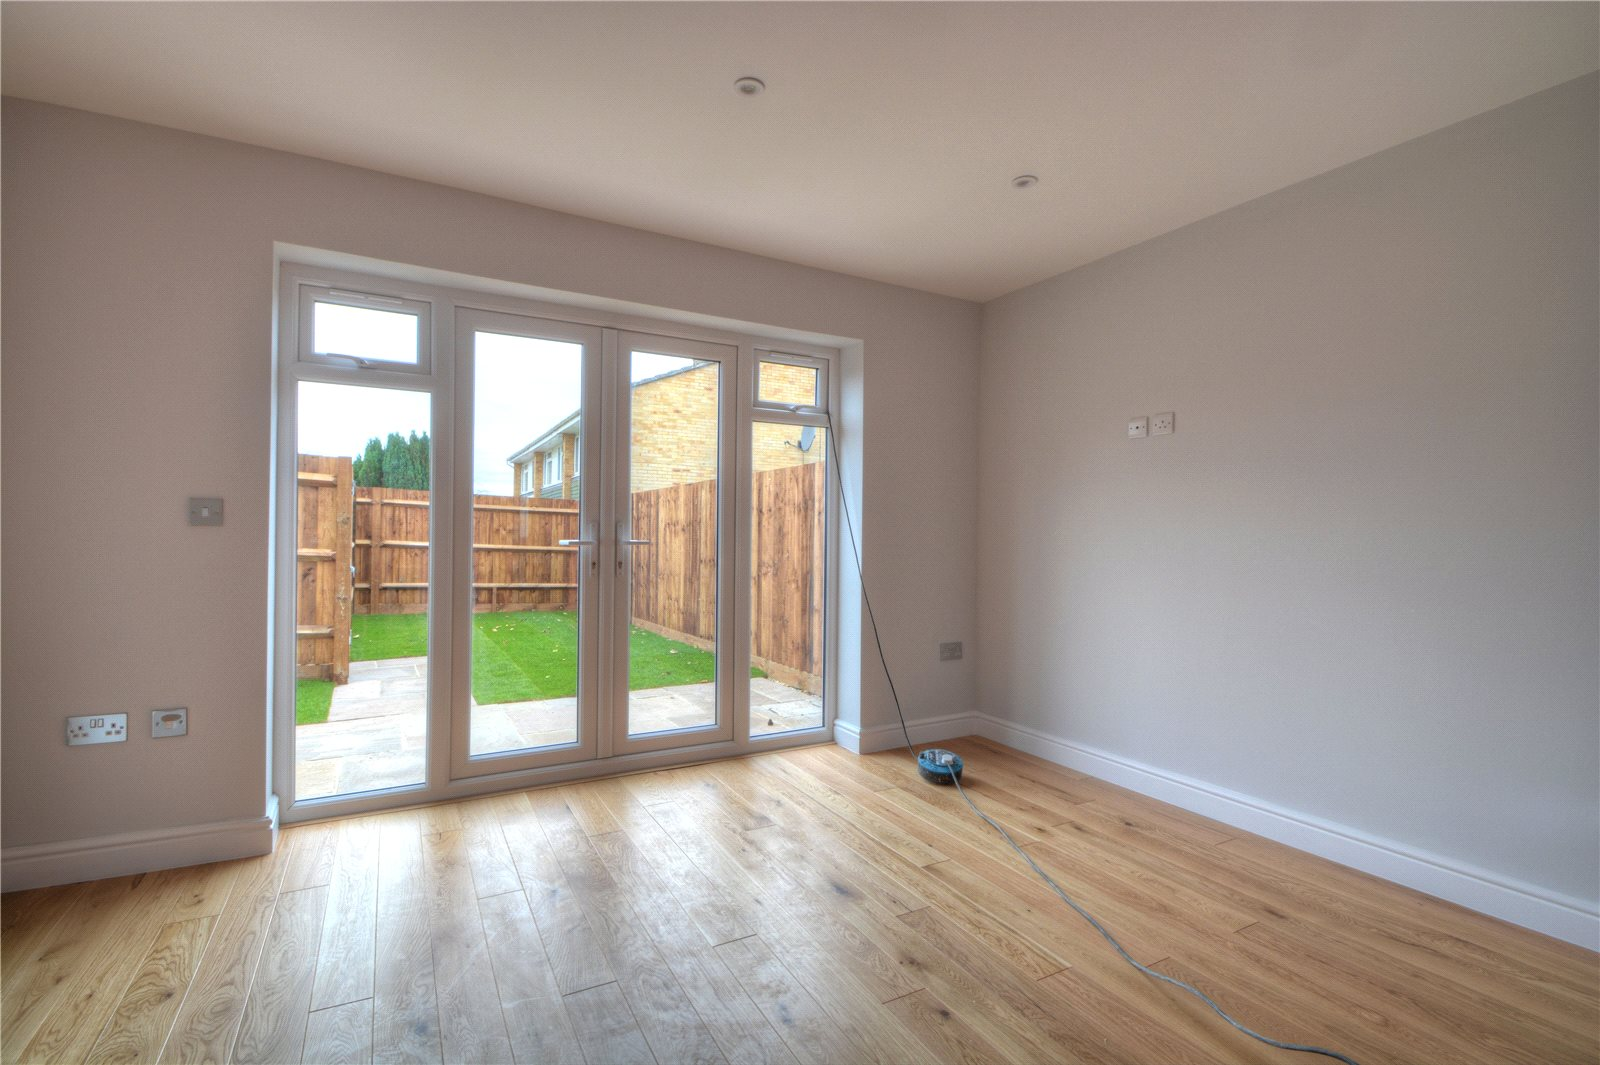 2 Bedroom Property For Sale In Hazelbank Close Liphook Hampshire GU30